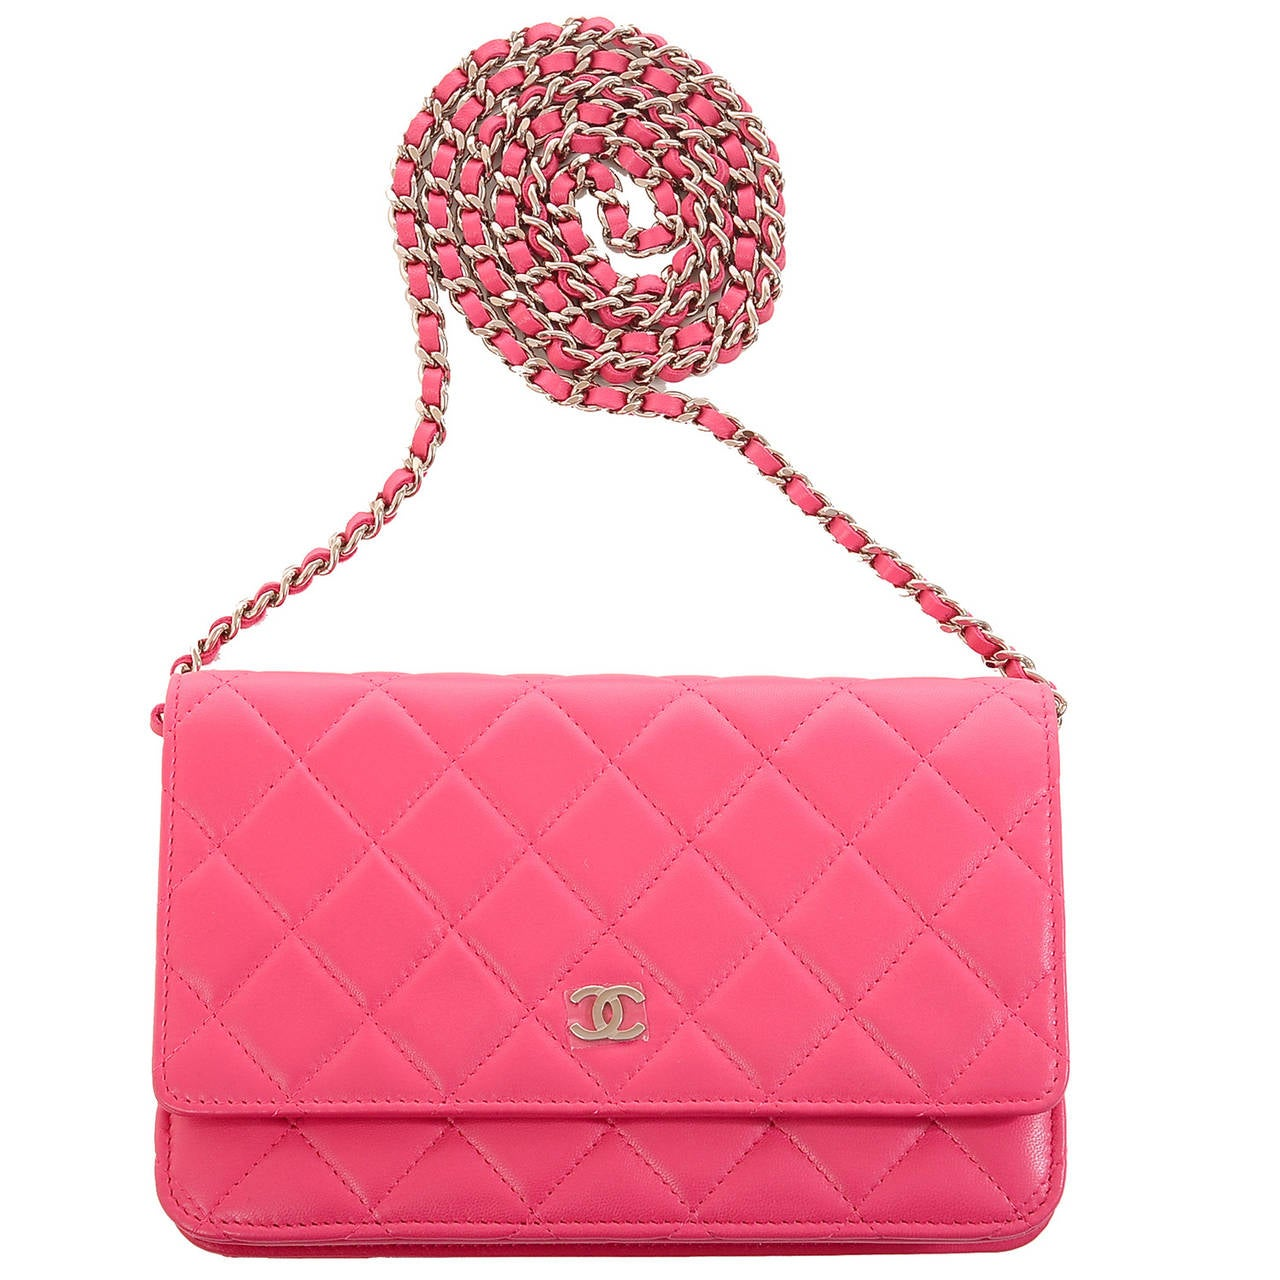 Chanel fuchsia pink Classic Wallet On Chain (WOC) of quilted lambskin leather and silver tone hardware.  The Wallet On Chain (WOC) is one of the most desired Chanel accessories. Its great styling, versatility and attractive price point makes it a